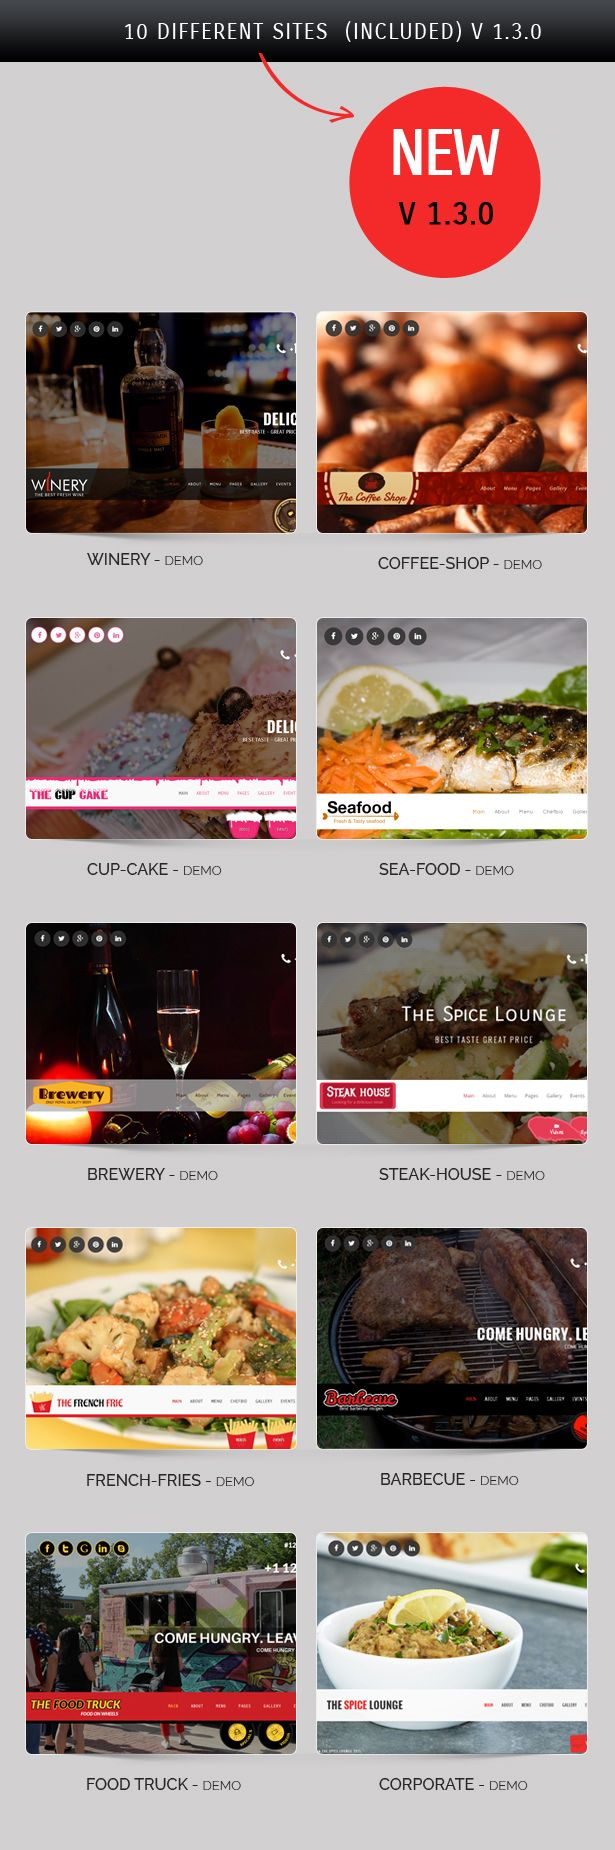 The Spice Lounge is a Responsive HTML 5 Bootstrap template designed for Restaurants, Cafe, Bars websites. Html files make everything clear and easy to customize. In this template there are ...